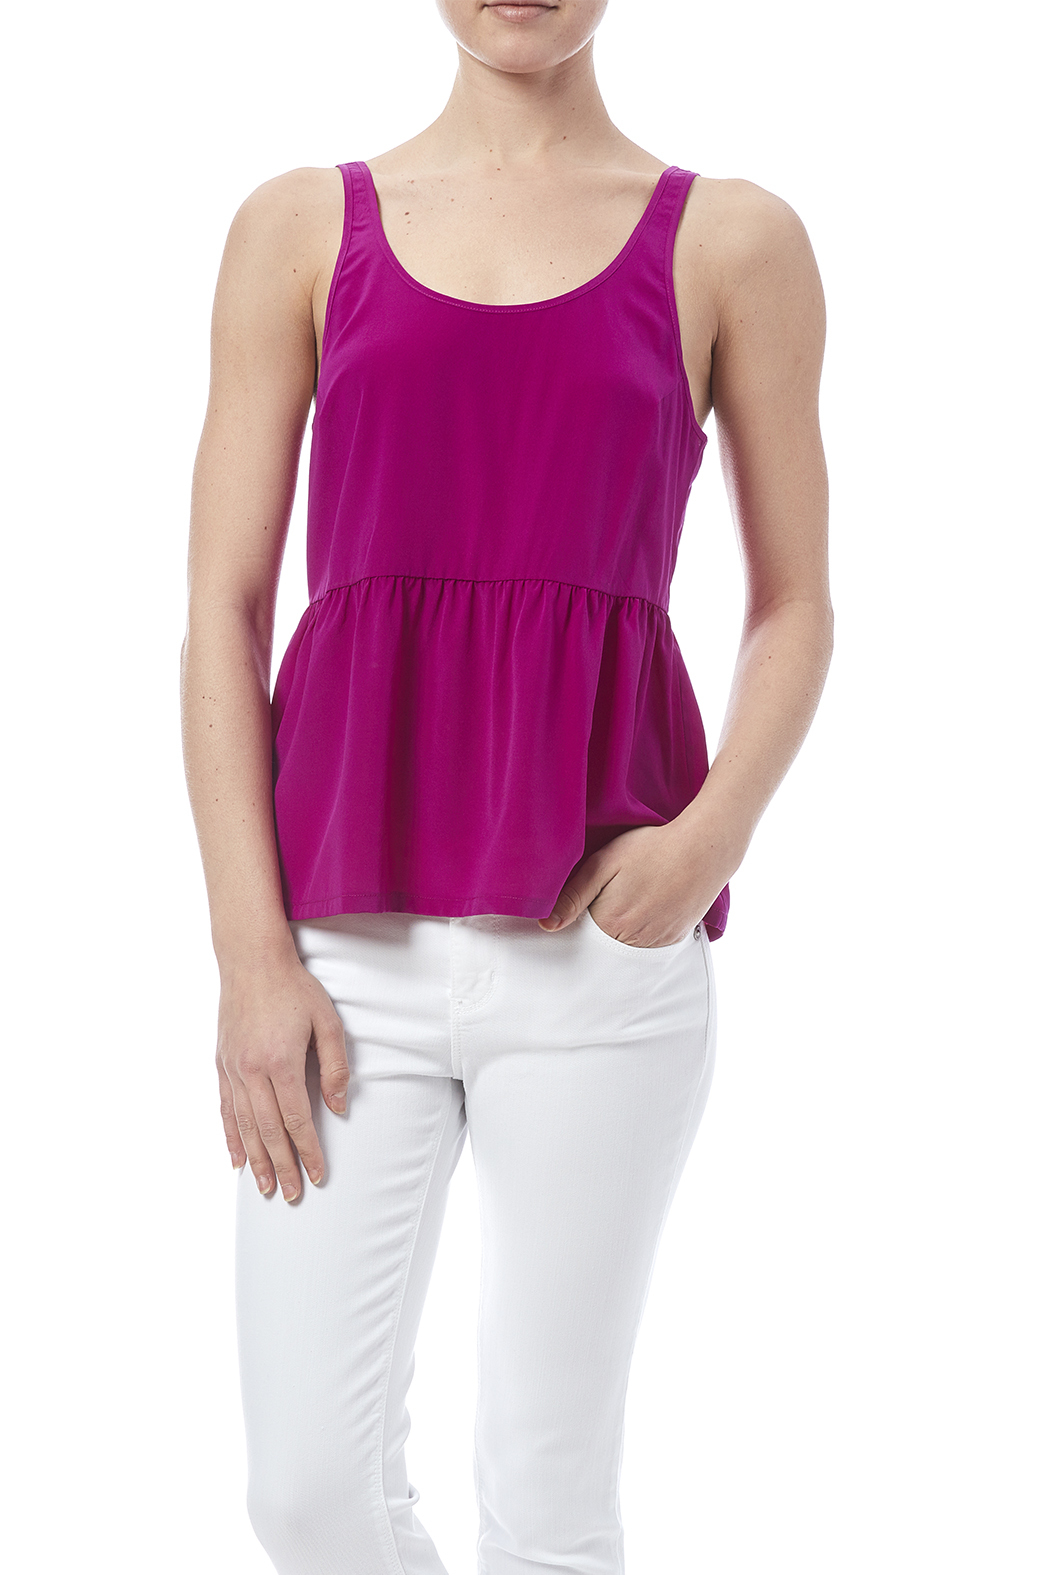 Bella Luxx Shirred Tank From San Diego By Little Apple Shoptiques